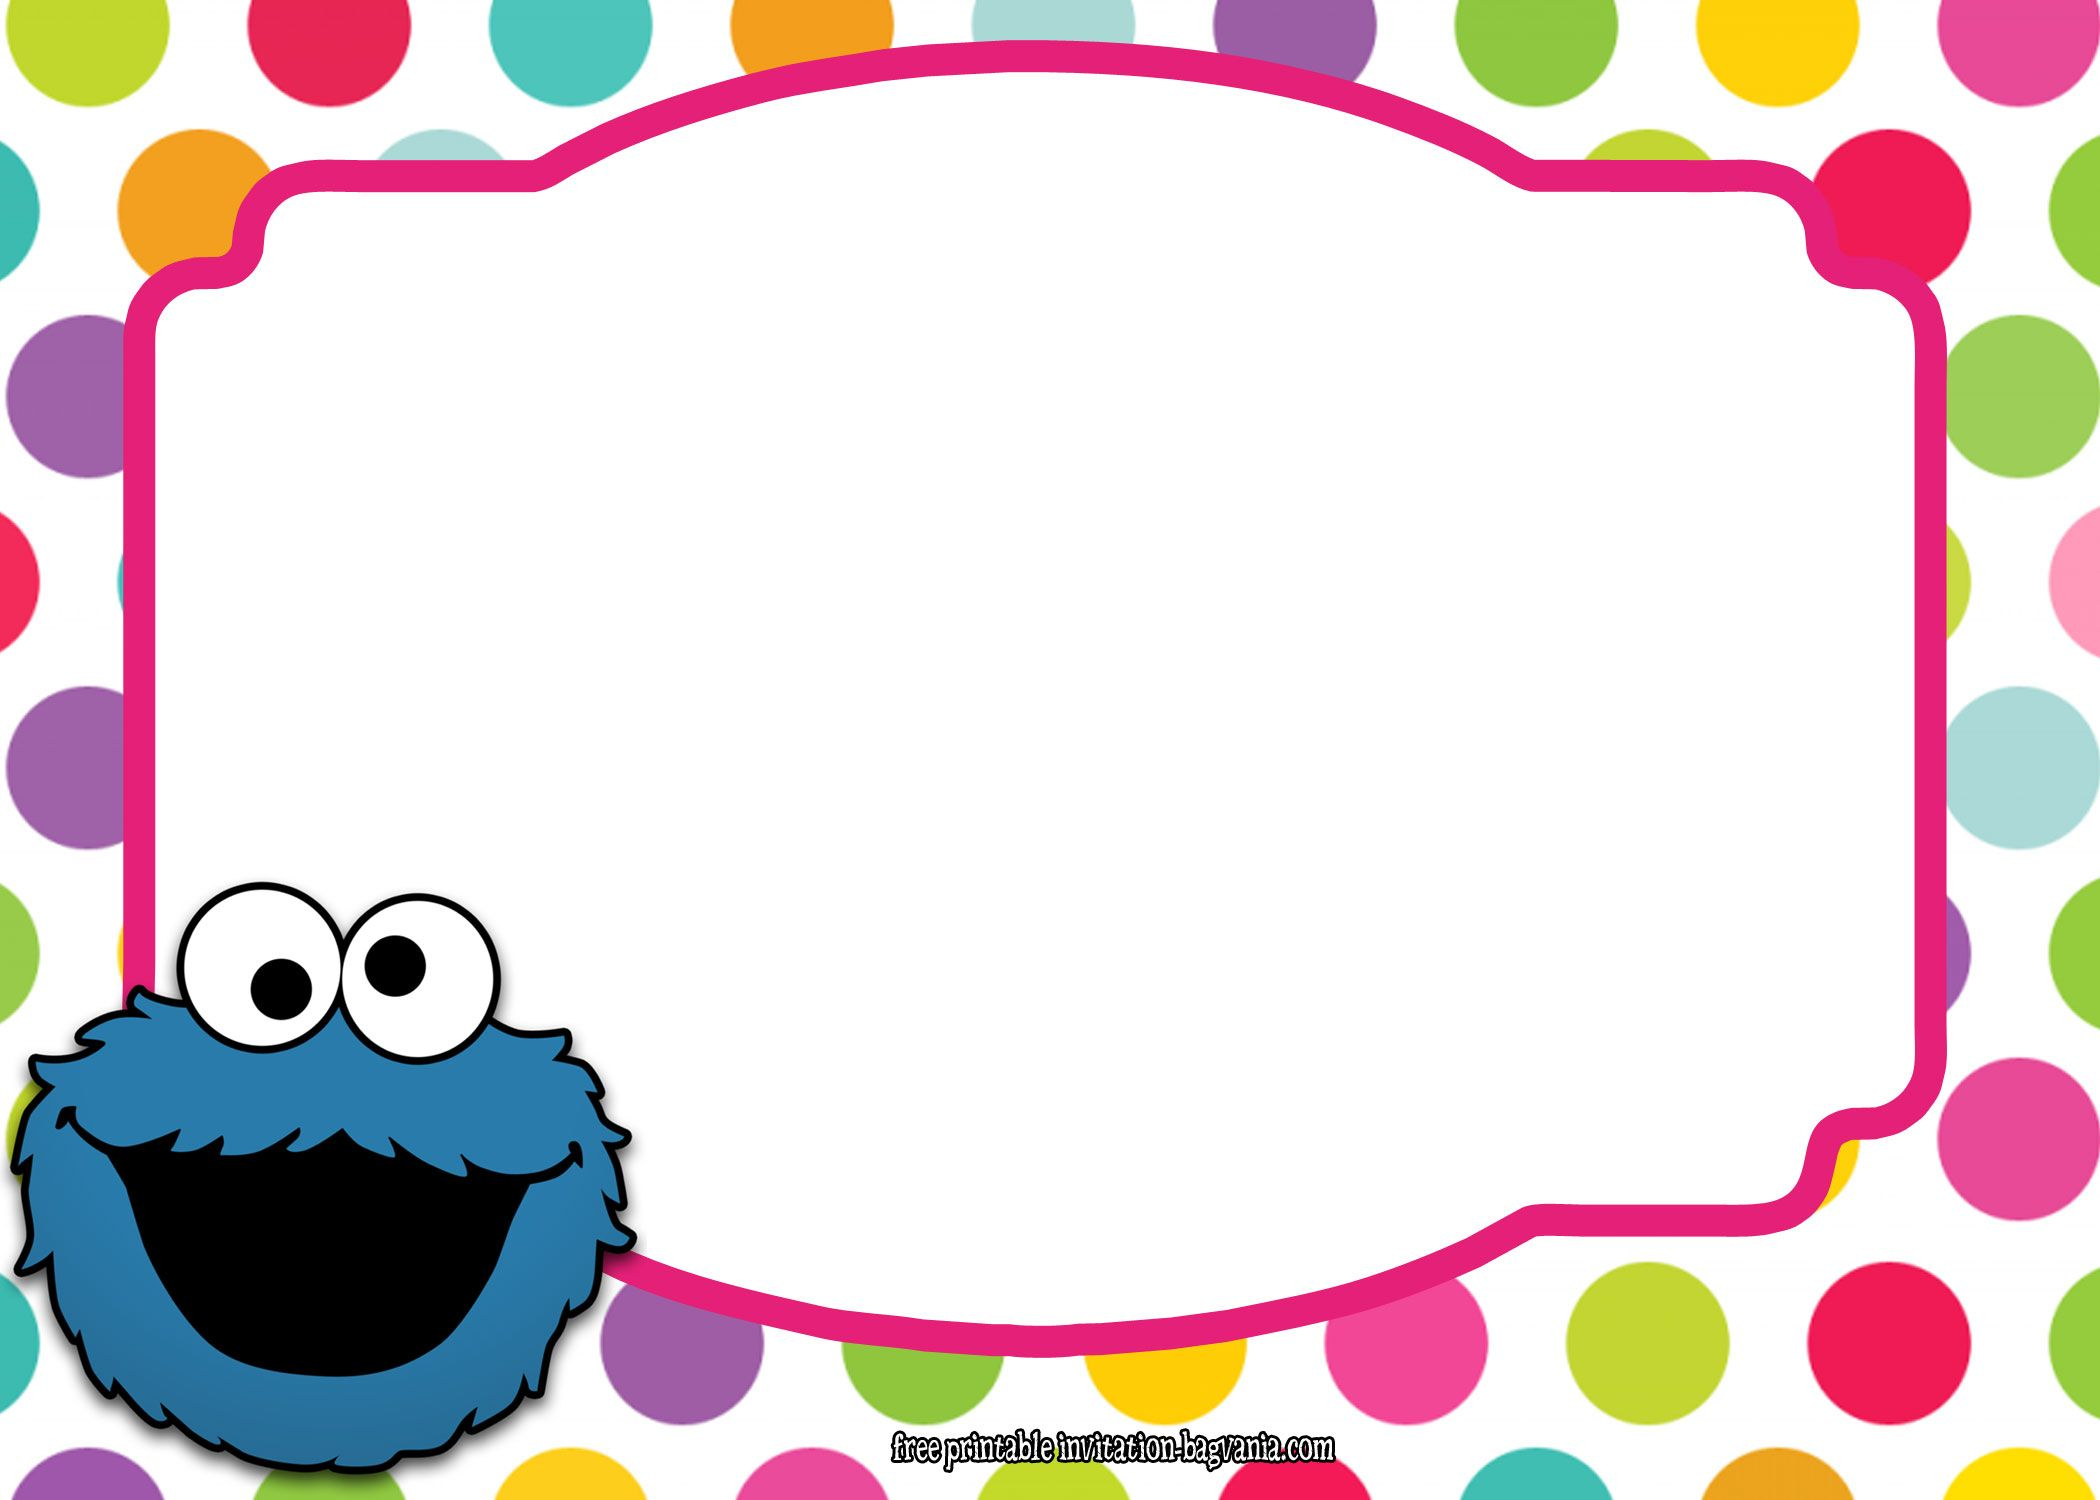 Download Now Sesame Street All Characters Invitation Template - Free Printable Cookie Monster Birthday Invitations